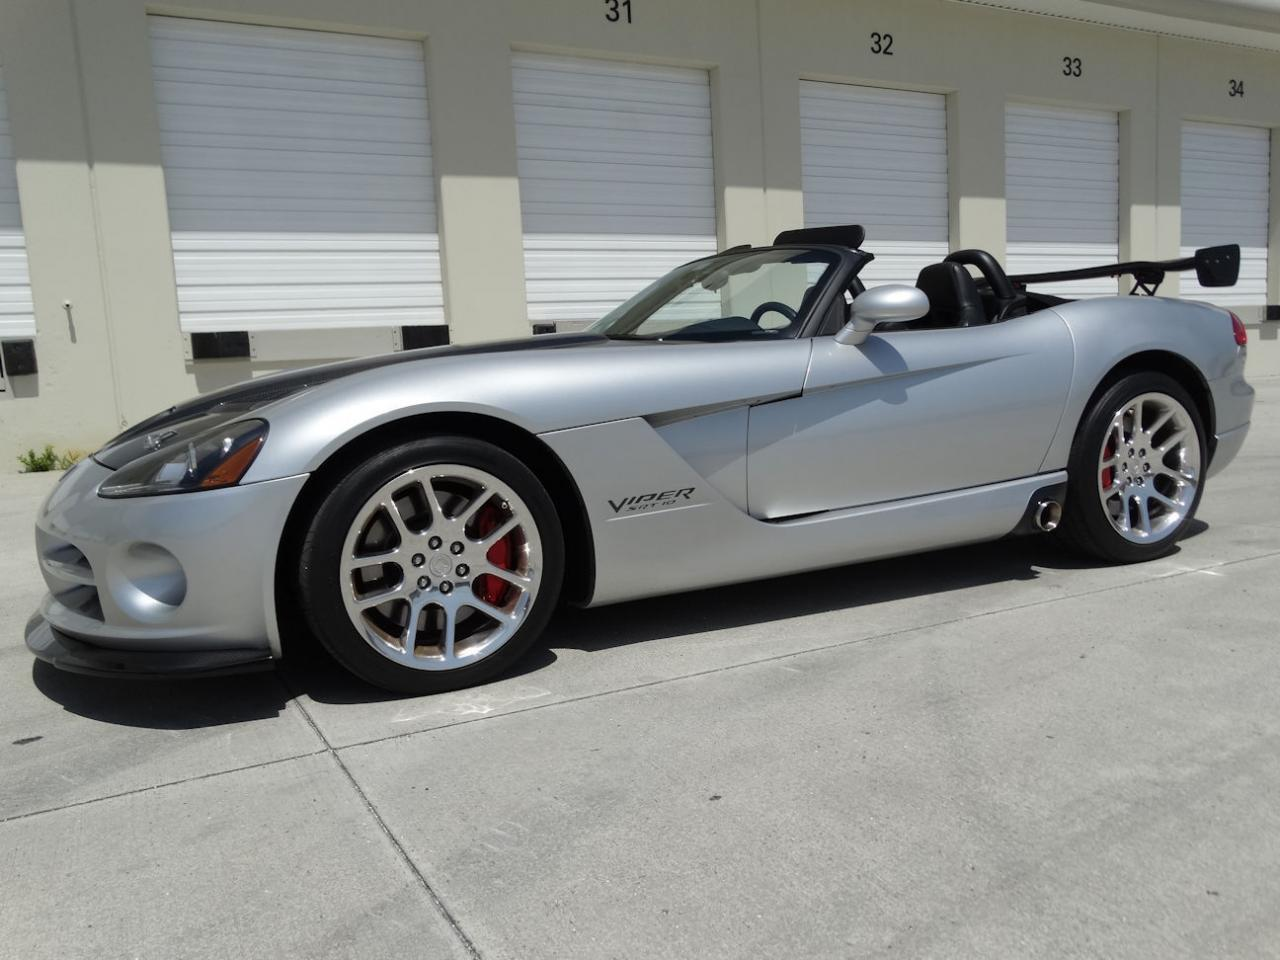 Large Picture of '04 Viper located in Coral Springs Florida - $54,000.00 - L6GU